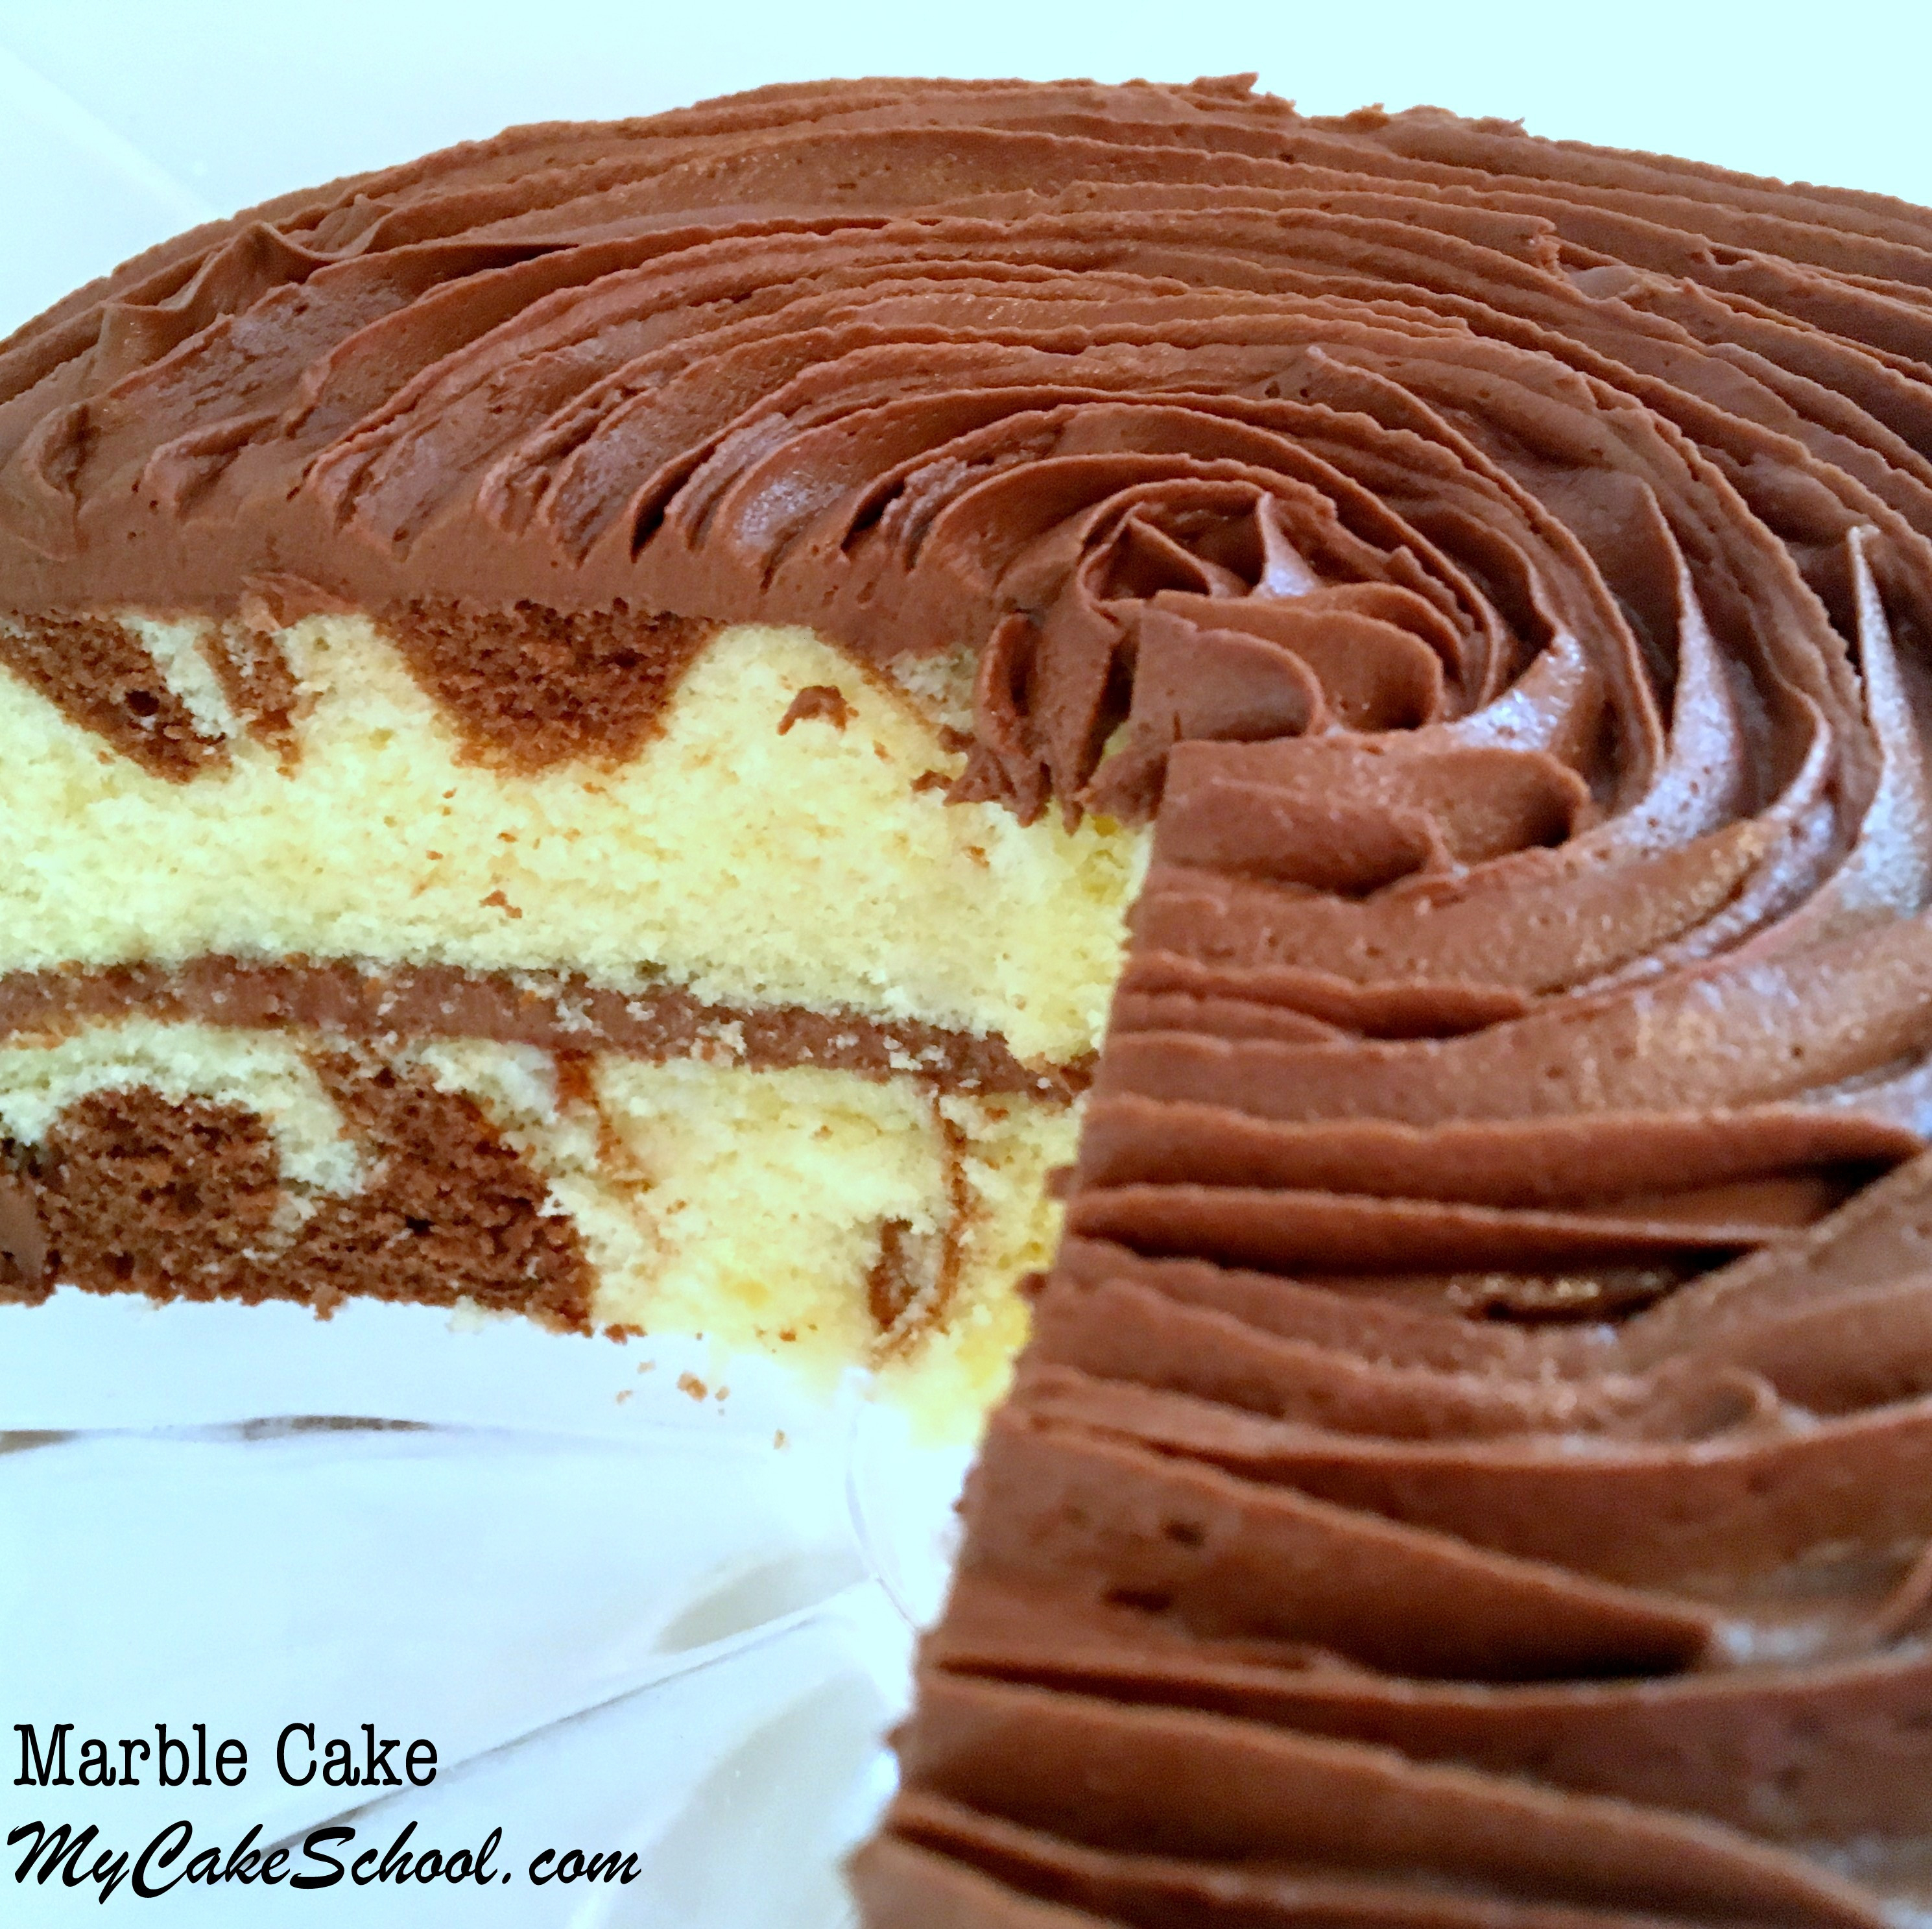 Marble Birthday Cake Recipe Moist And Delicious Marble Cake From Scratch My Cake School